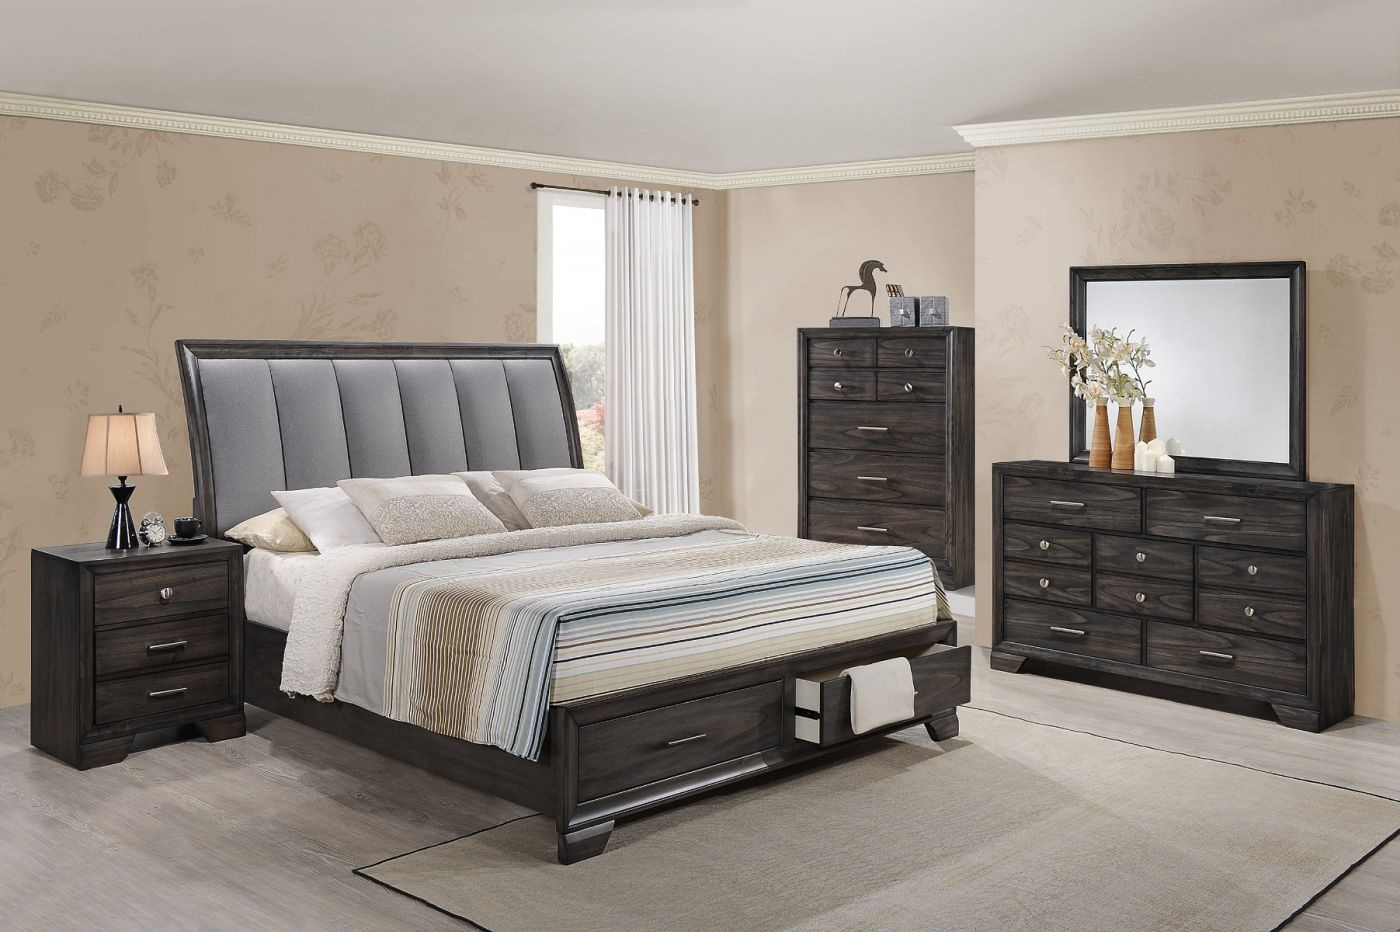 Bedroom Groups with Underbed Storage